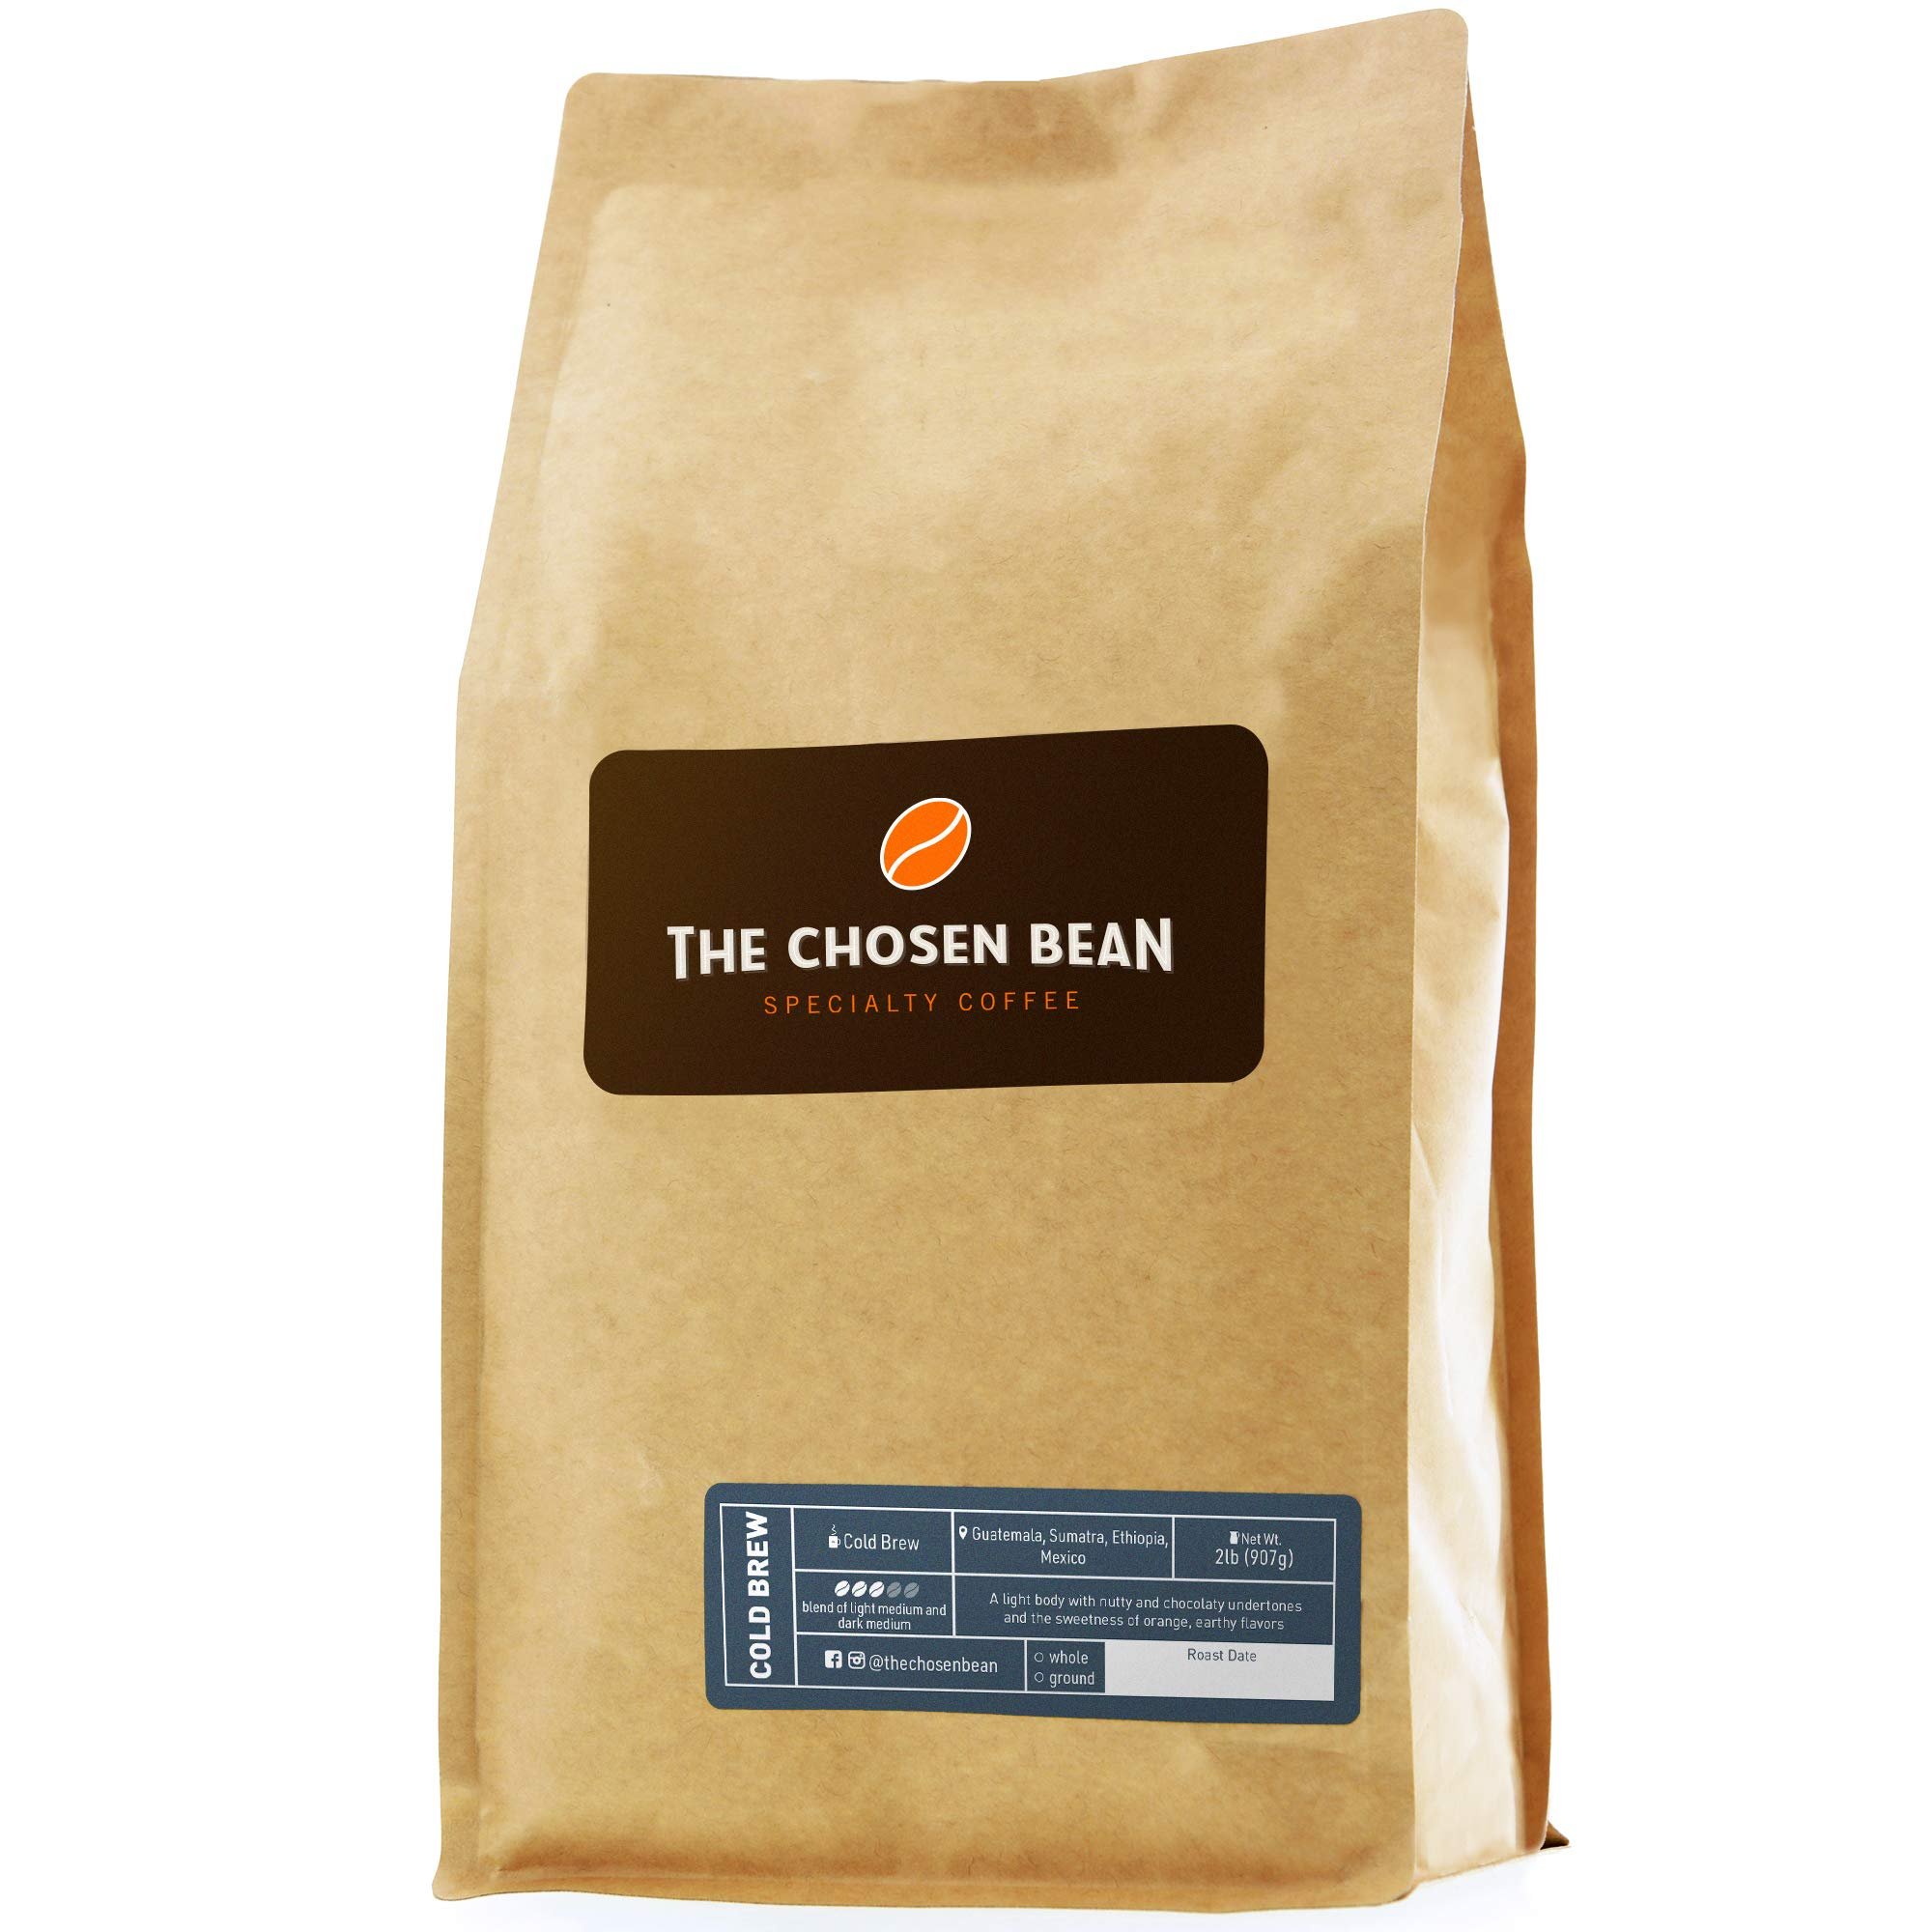 The Chosen Bean Premium Artisan Cold Brew Whole Coffee Beans, Small Batch Roasted, Organic and Fair Trade Roasters, 2 lbs